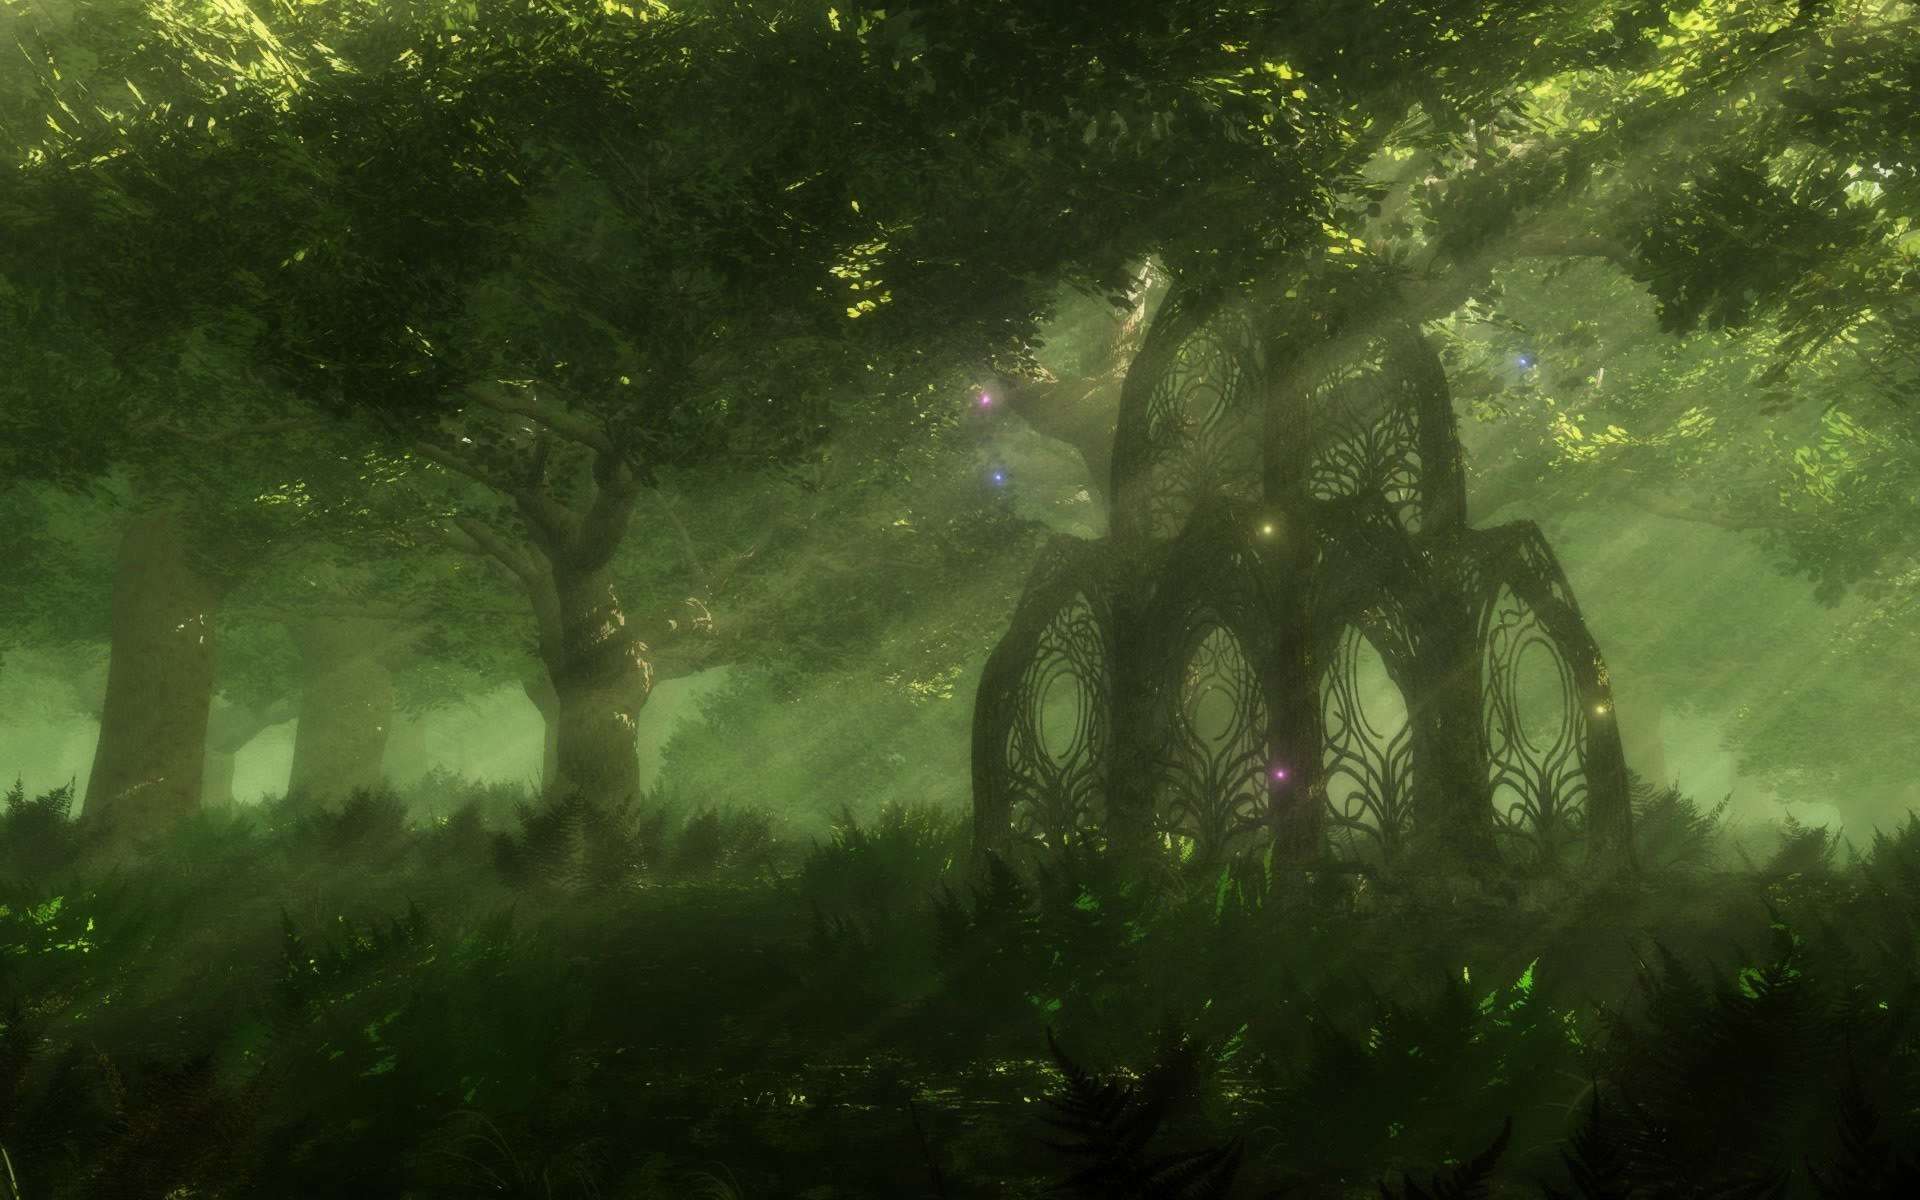 73 anime forest background on wallpapersafari - Anime forest background ...